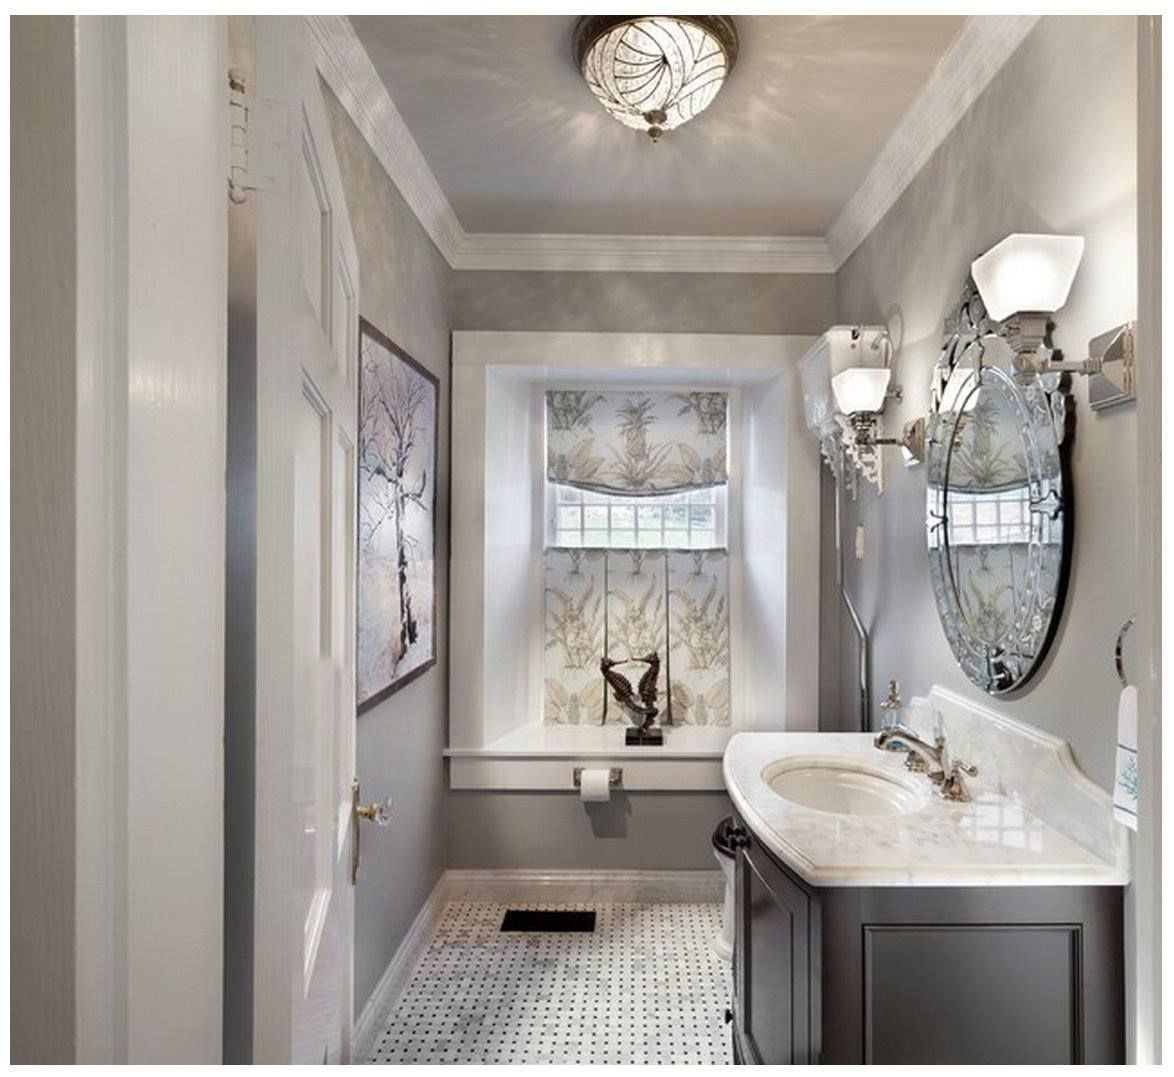 Rockport Gray Kitchen: Love This Bathroom Color! It's Rockport Gray By Benjamin